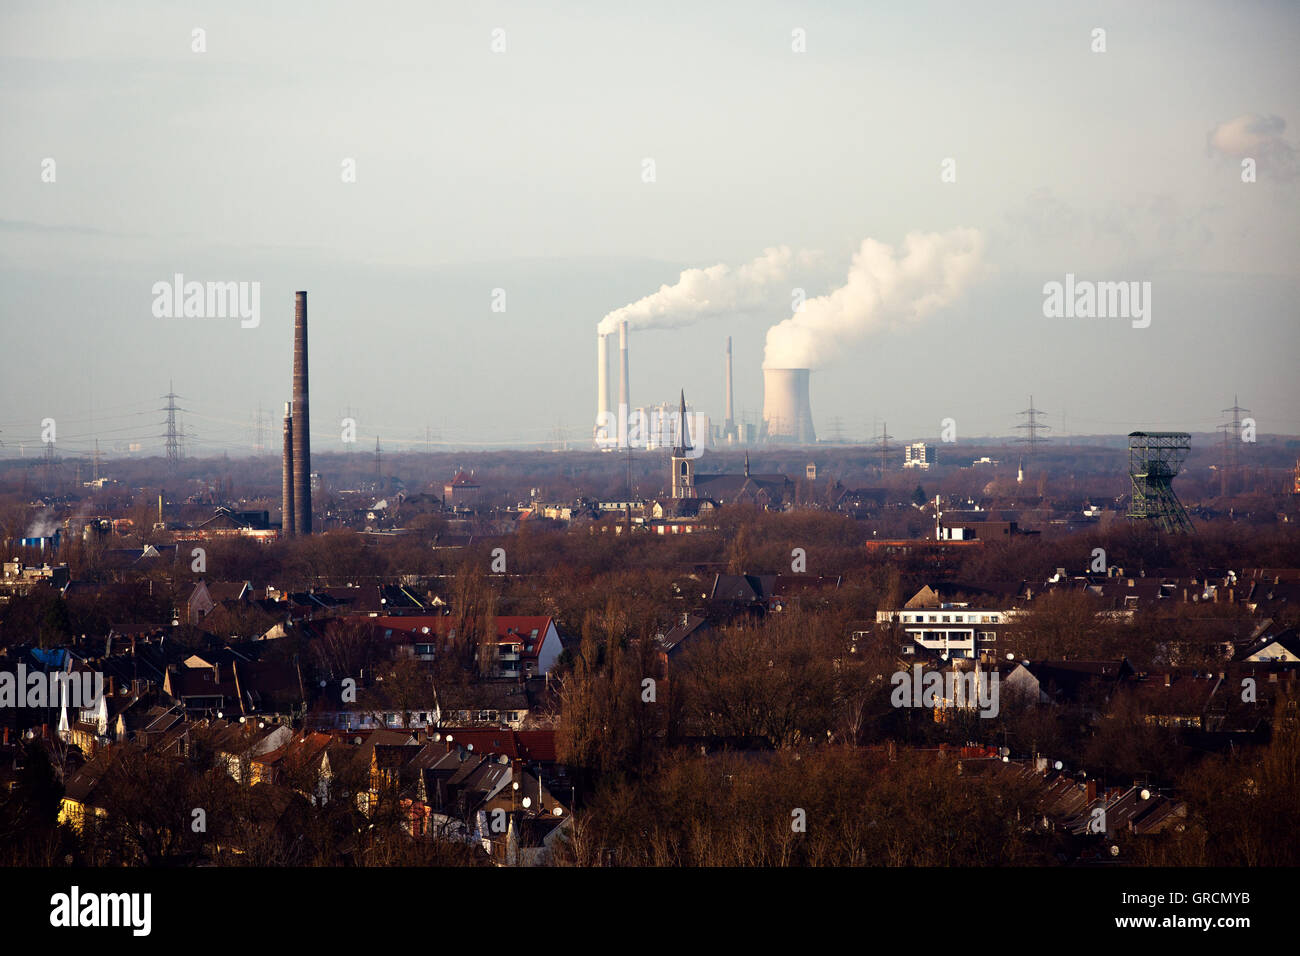 View Of Duisburg, Duisburg Marxloh, Industry, Ruhr Region - Stock Image